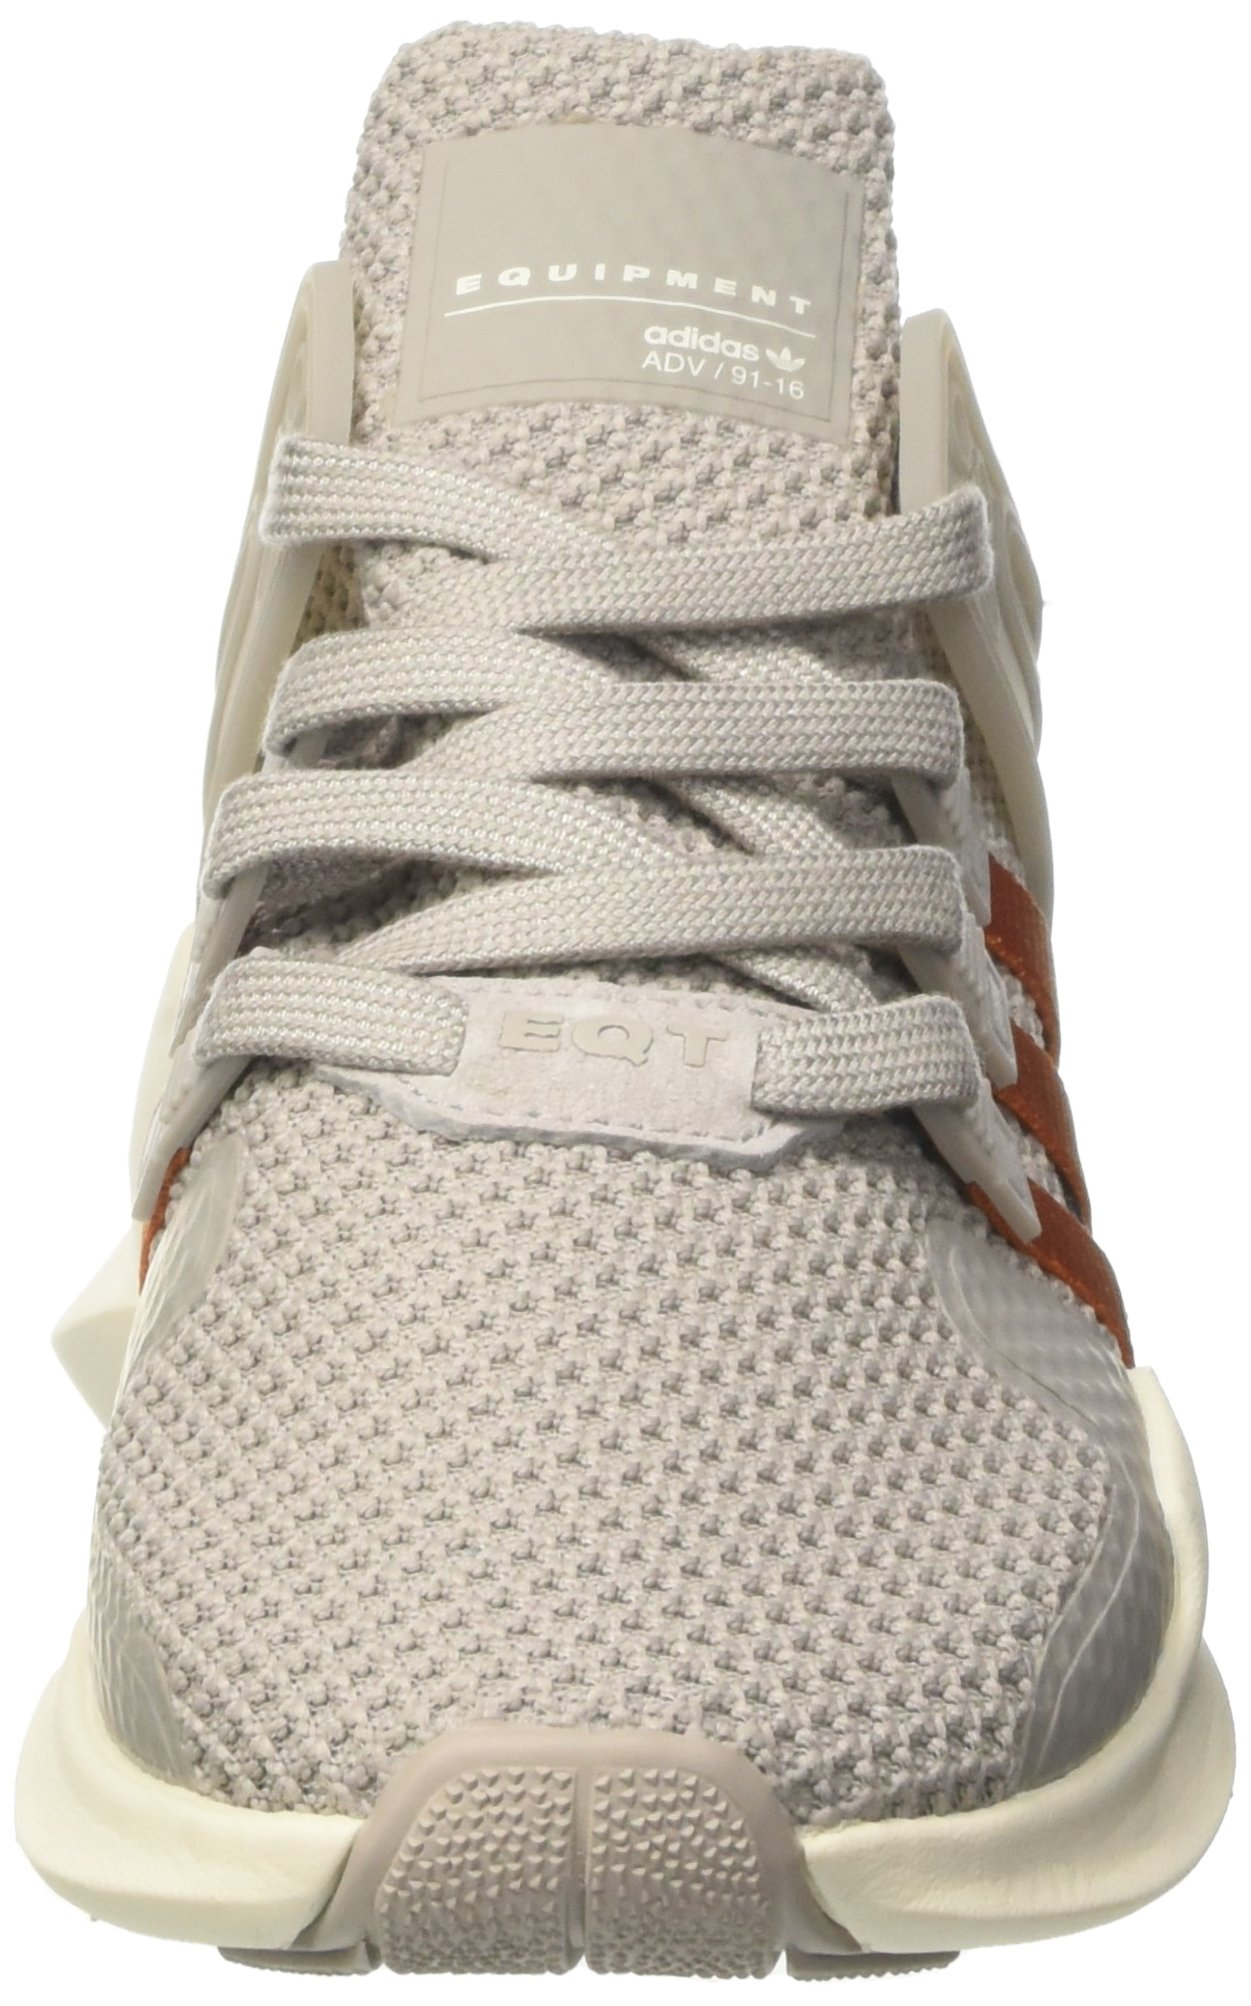 81JZfZC93ML - adidas Women's Equipment Support a Low-Top Sneakers, Grey